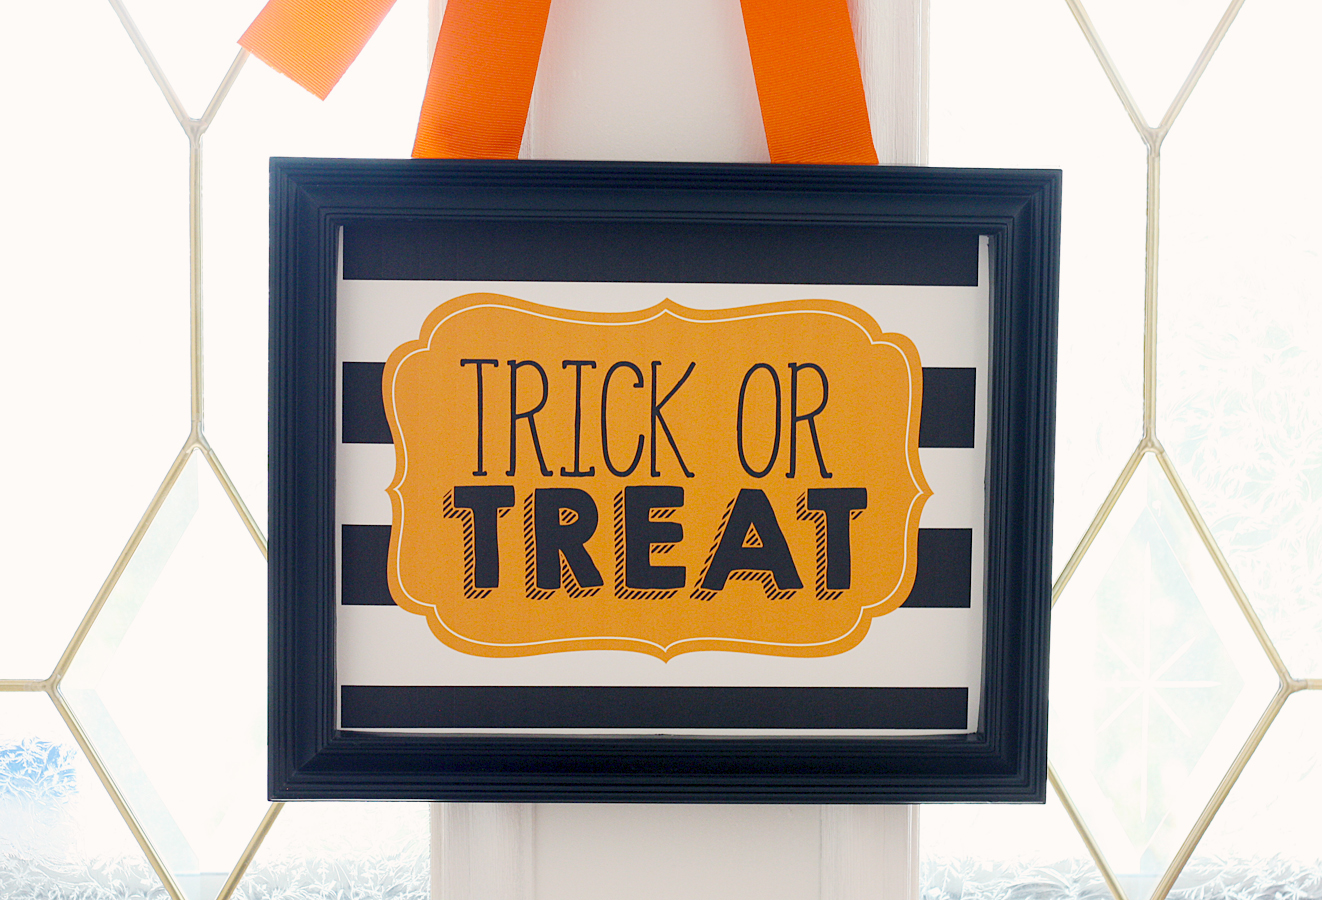 The most awesome Halloween party games for all ages - tons of great ideas for adults, for kids, and even for seniors! Great for at home or in the classroom!